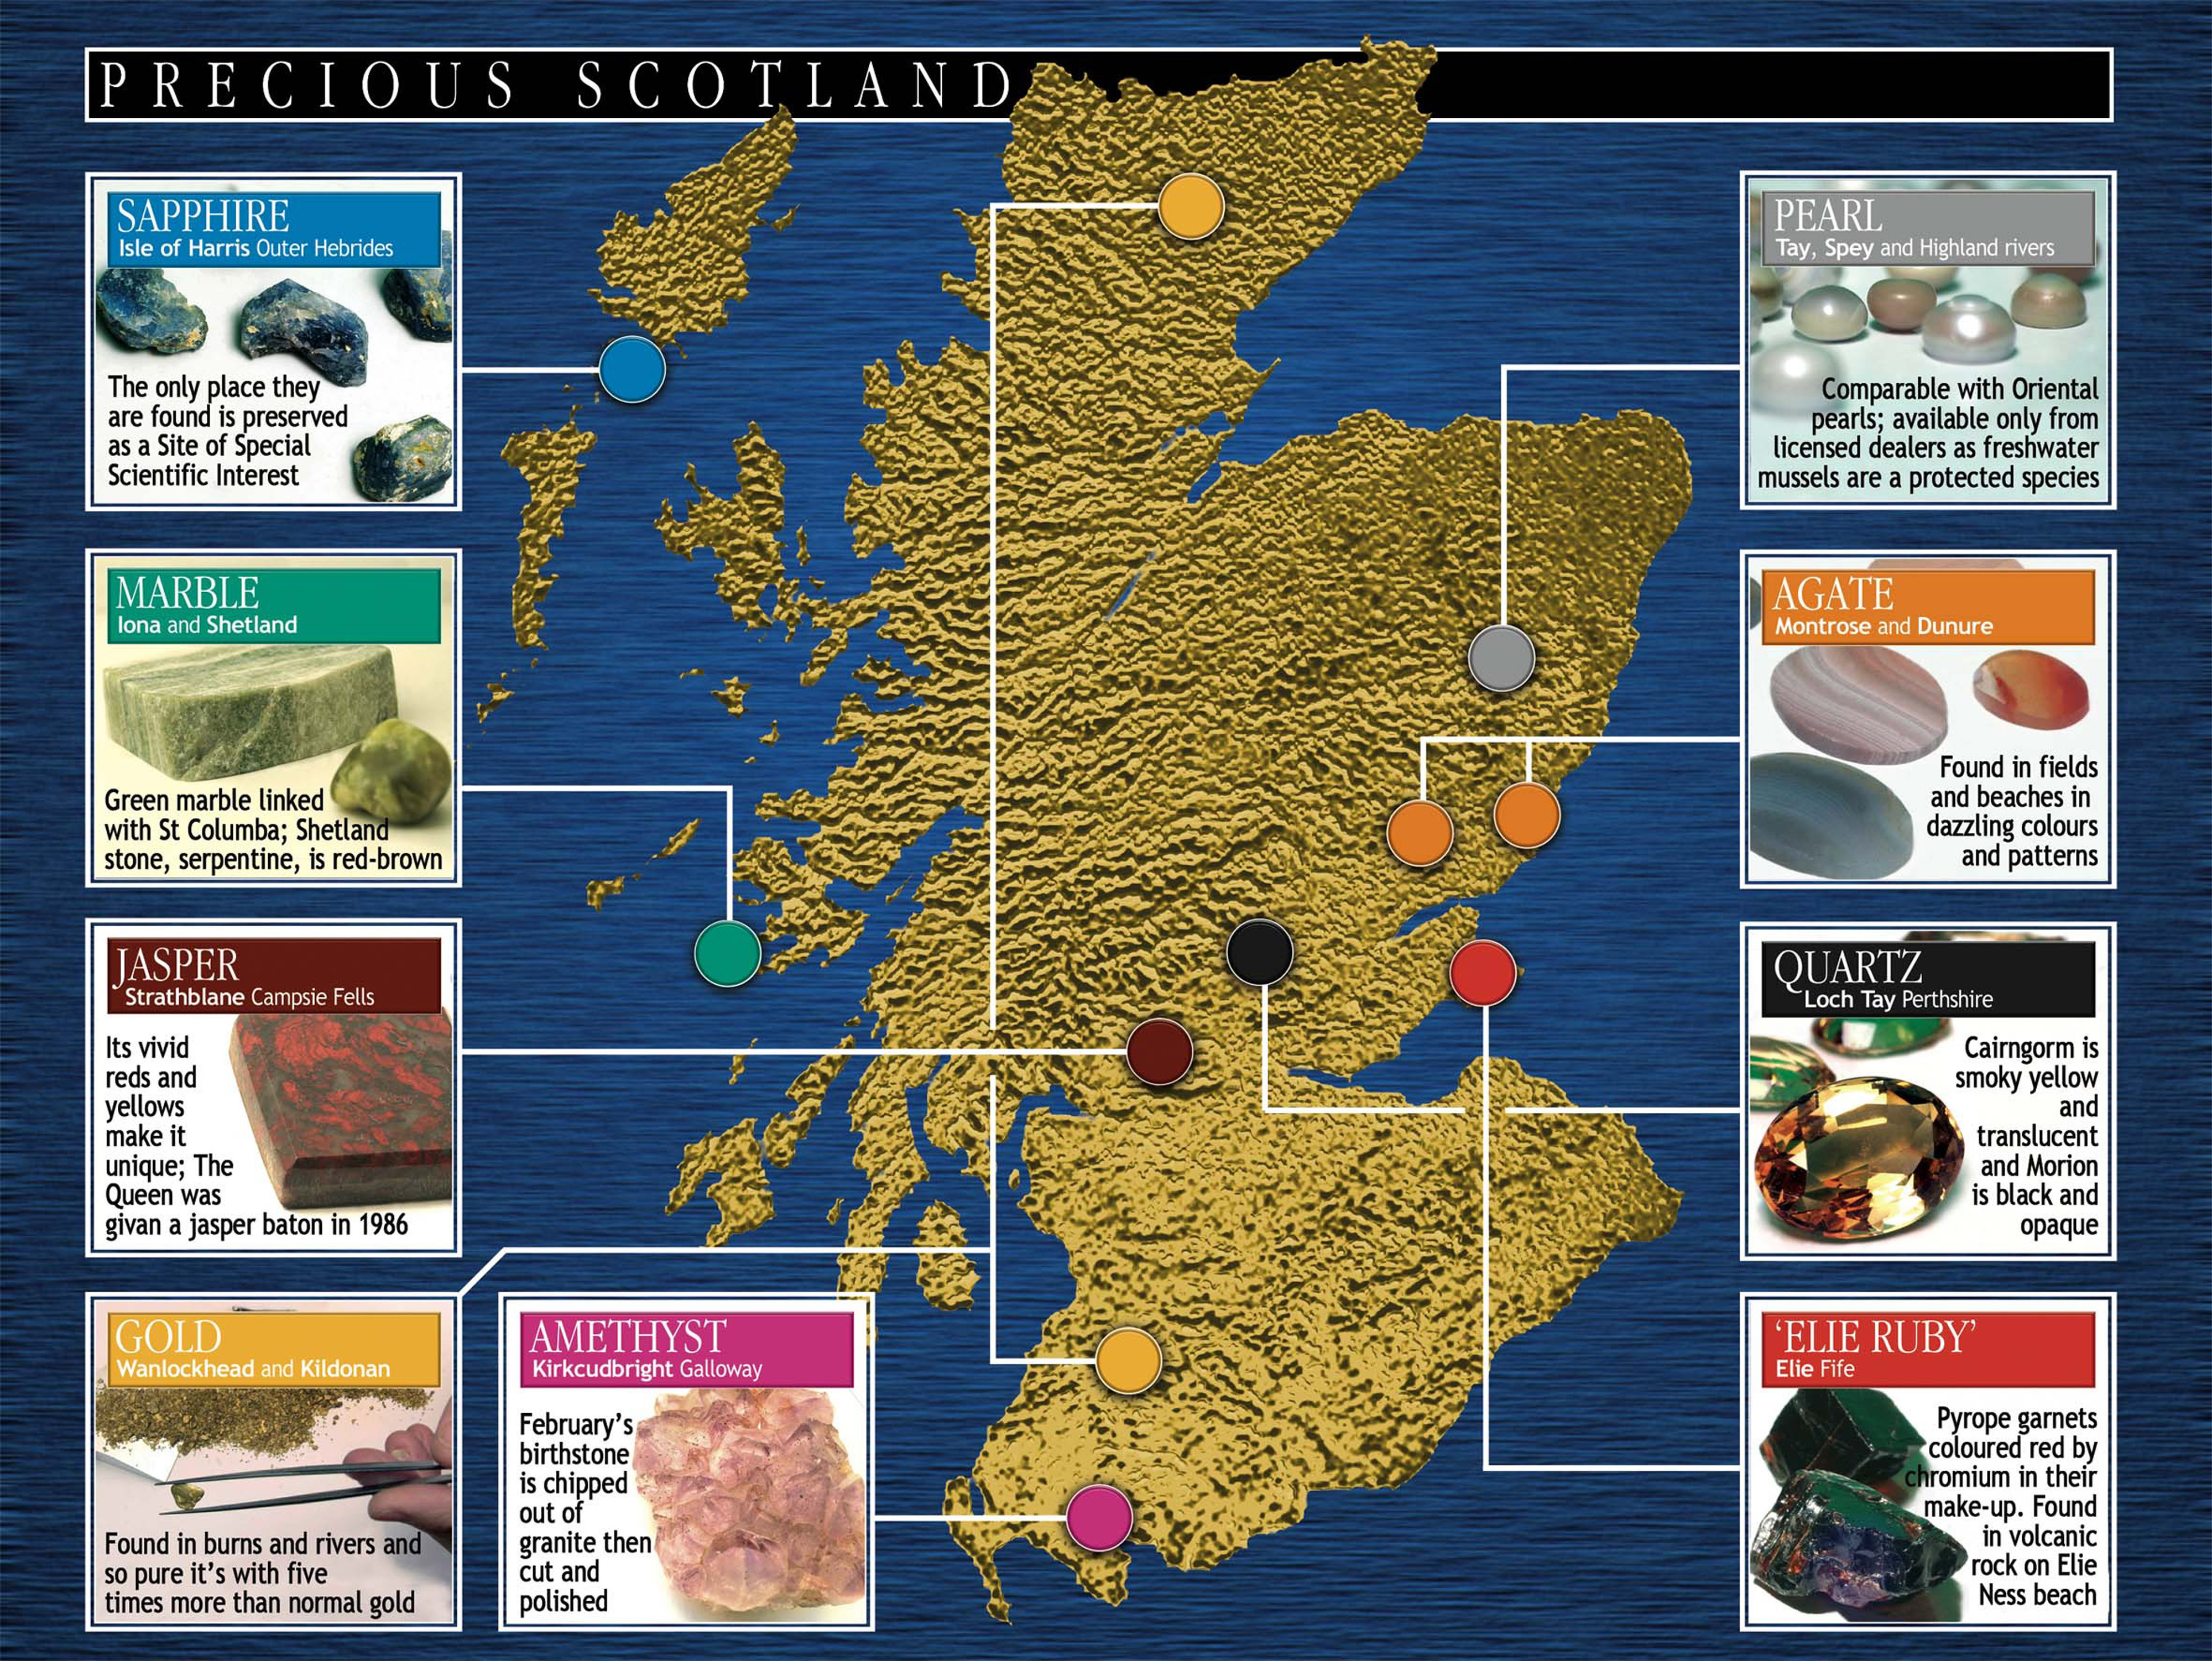 Jeweller Draws Up Unique Map of Precious Scotland with help of PR